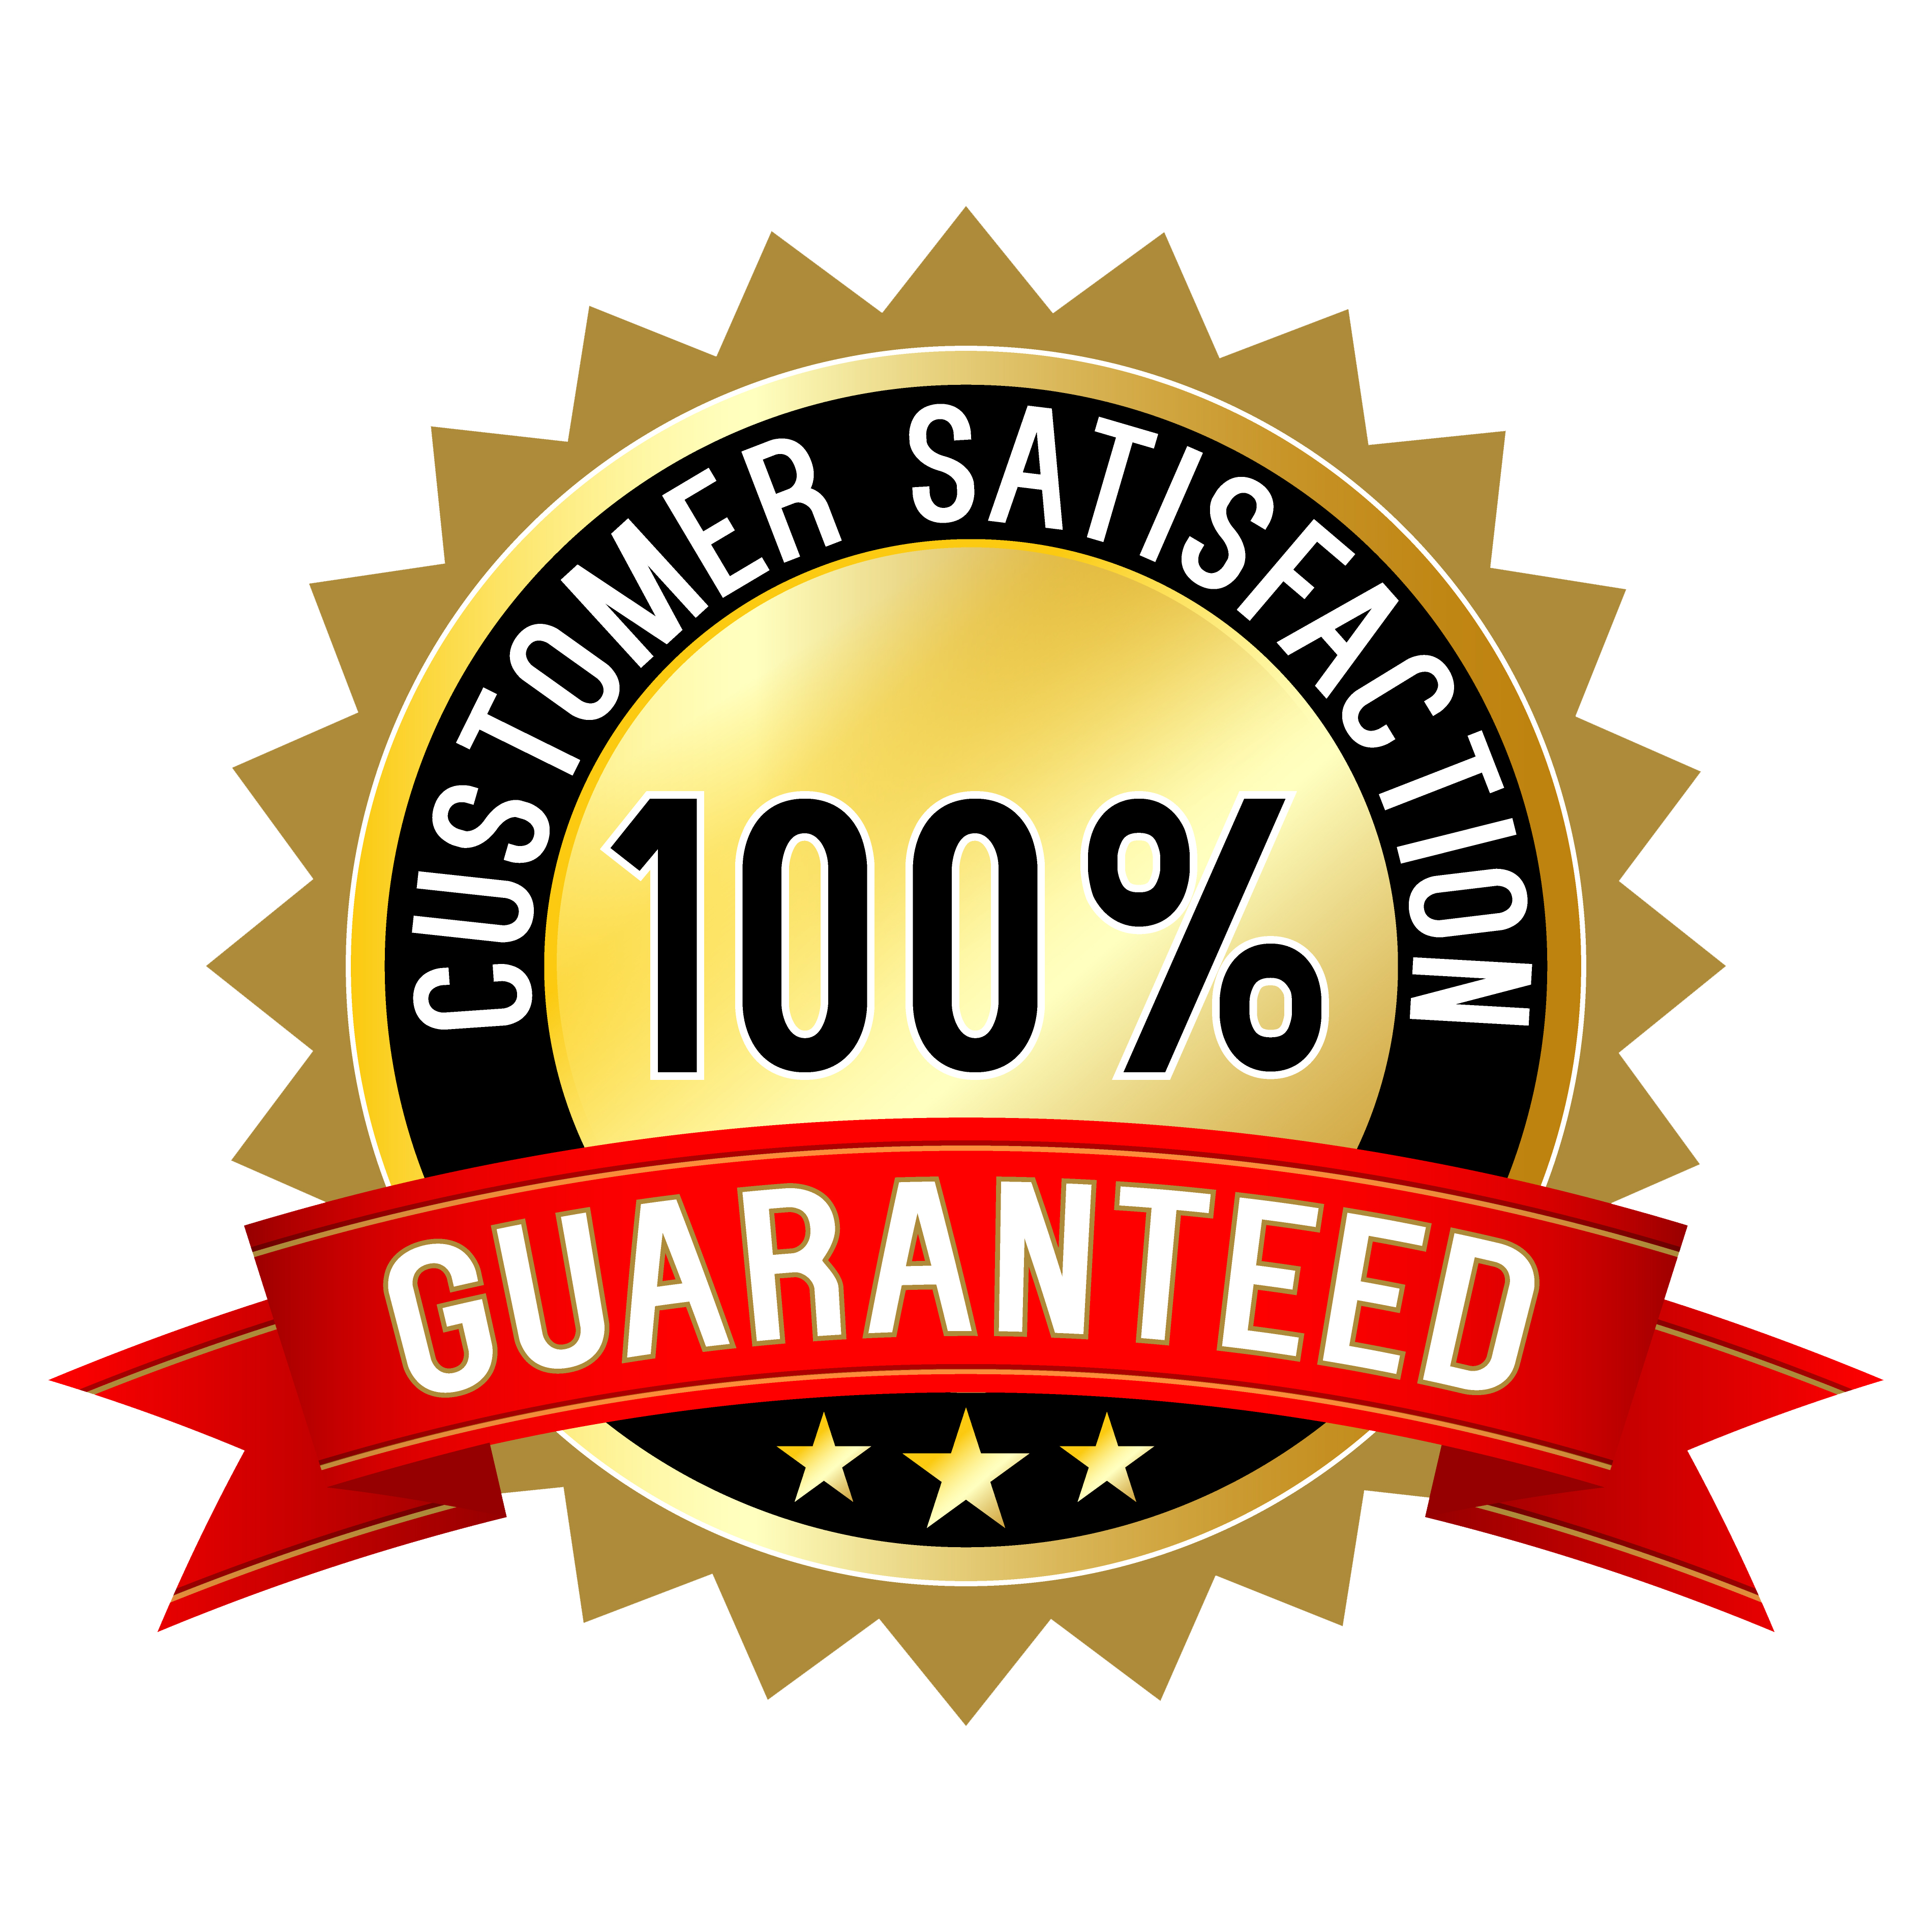 satisfaction guaranteed ding machine 513 235 2095 dent rh dingmachine com satisfaction guaranteed logo vector 100 satisfaction guarantee logo